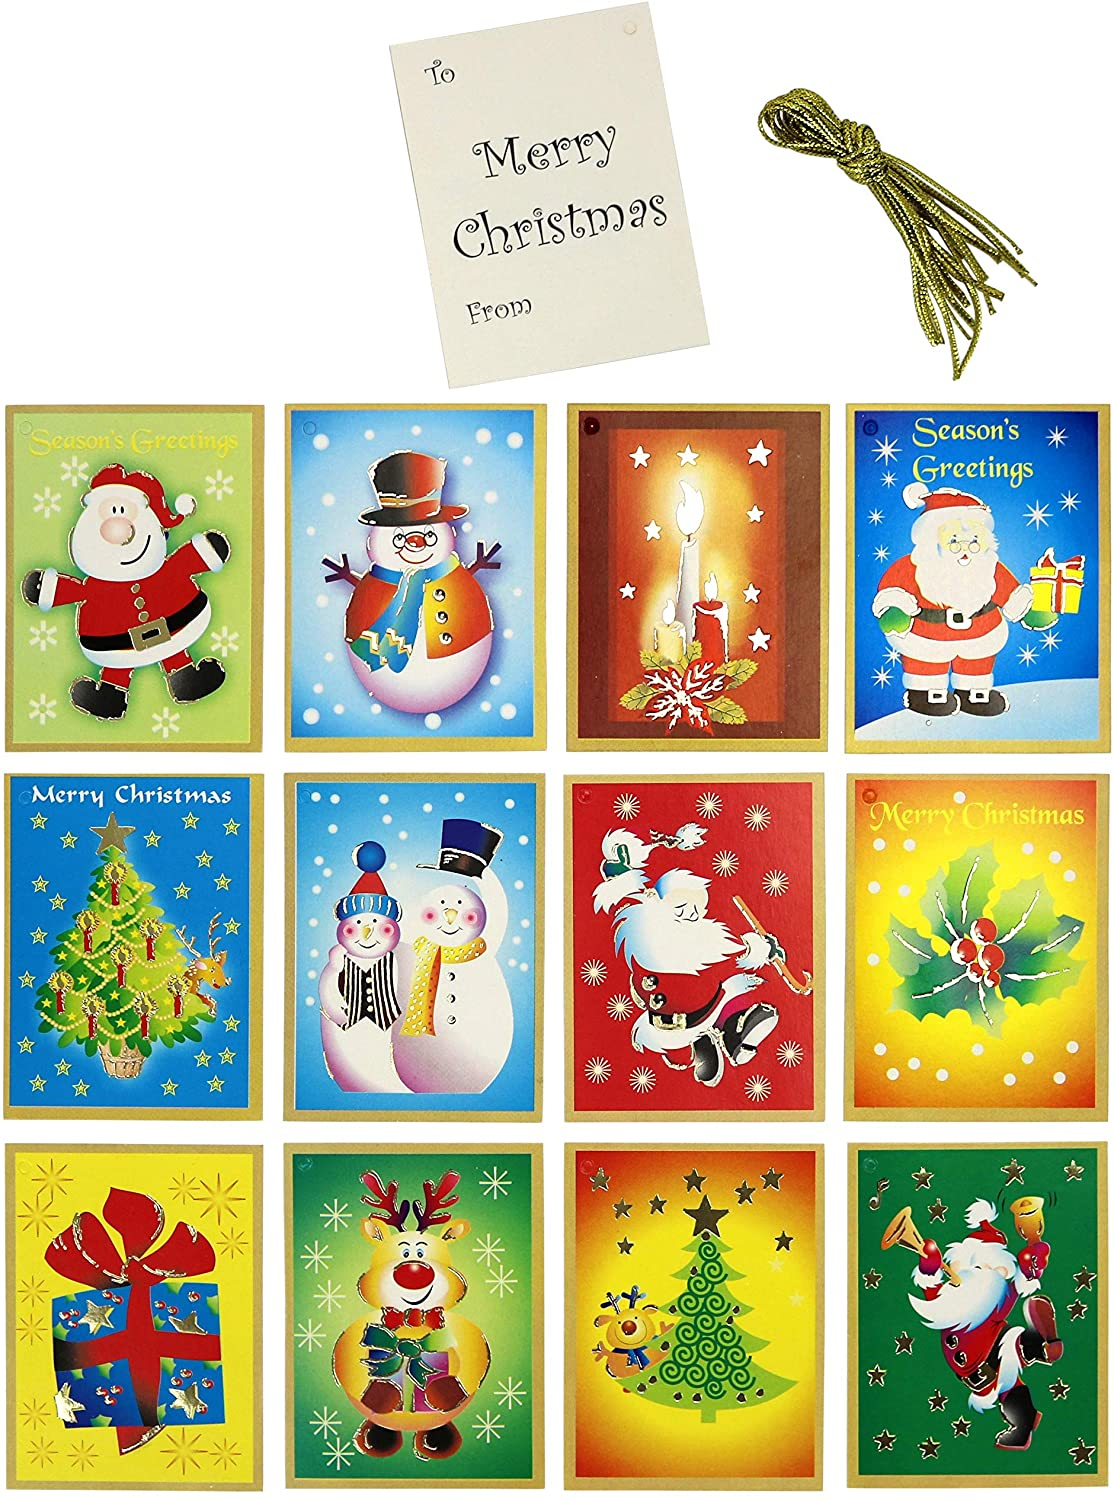 Iconikal 144-Count Tie-On Christmas Holiday Gift Tags, (12 Designs)